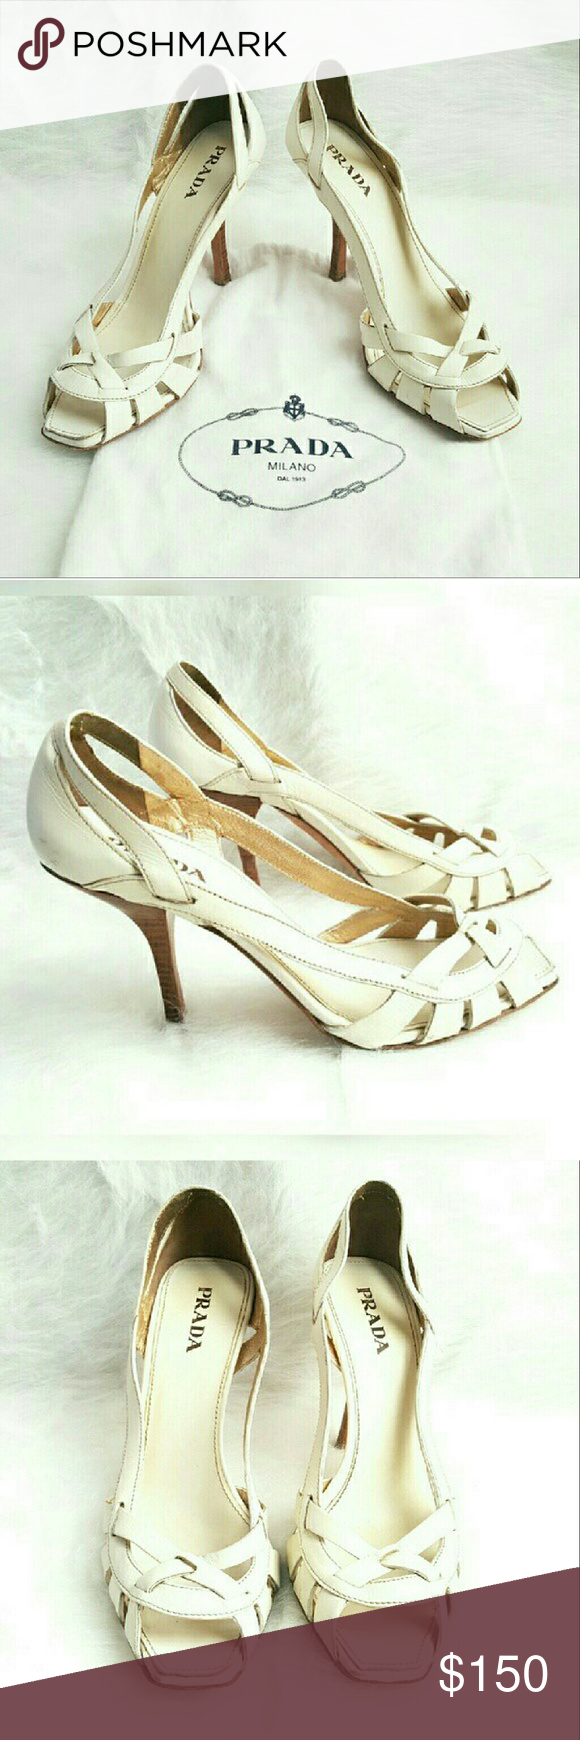 Prada White Leather Heels Prada White Leather Heels with Cut Out Details and Wooden Heel. There are some minor scuffs on the back and normal wear on the bottom of the shoe (see pic) Prada Shoes Heels